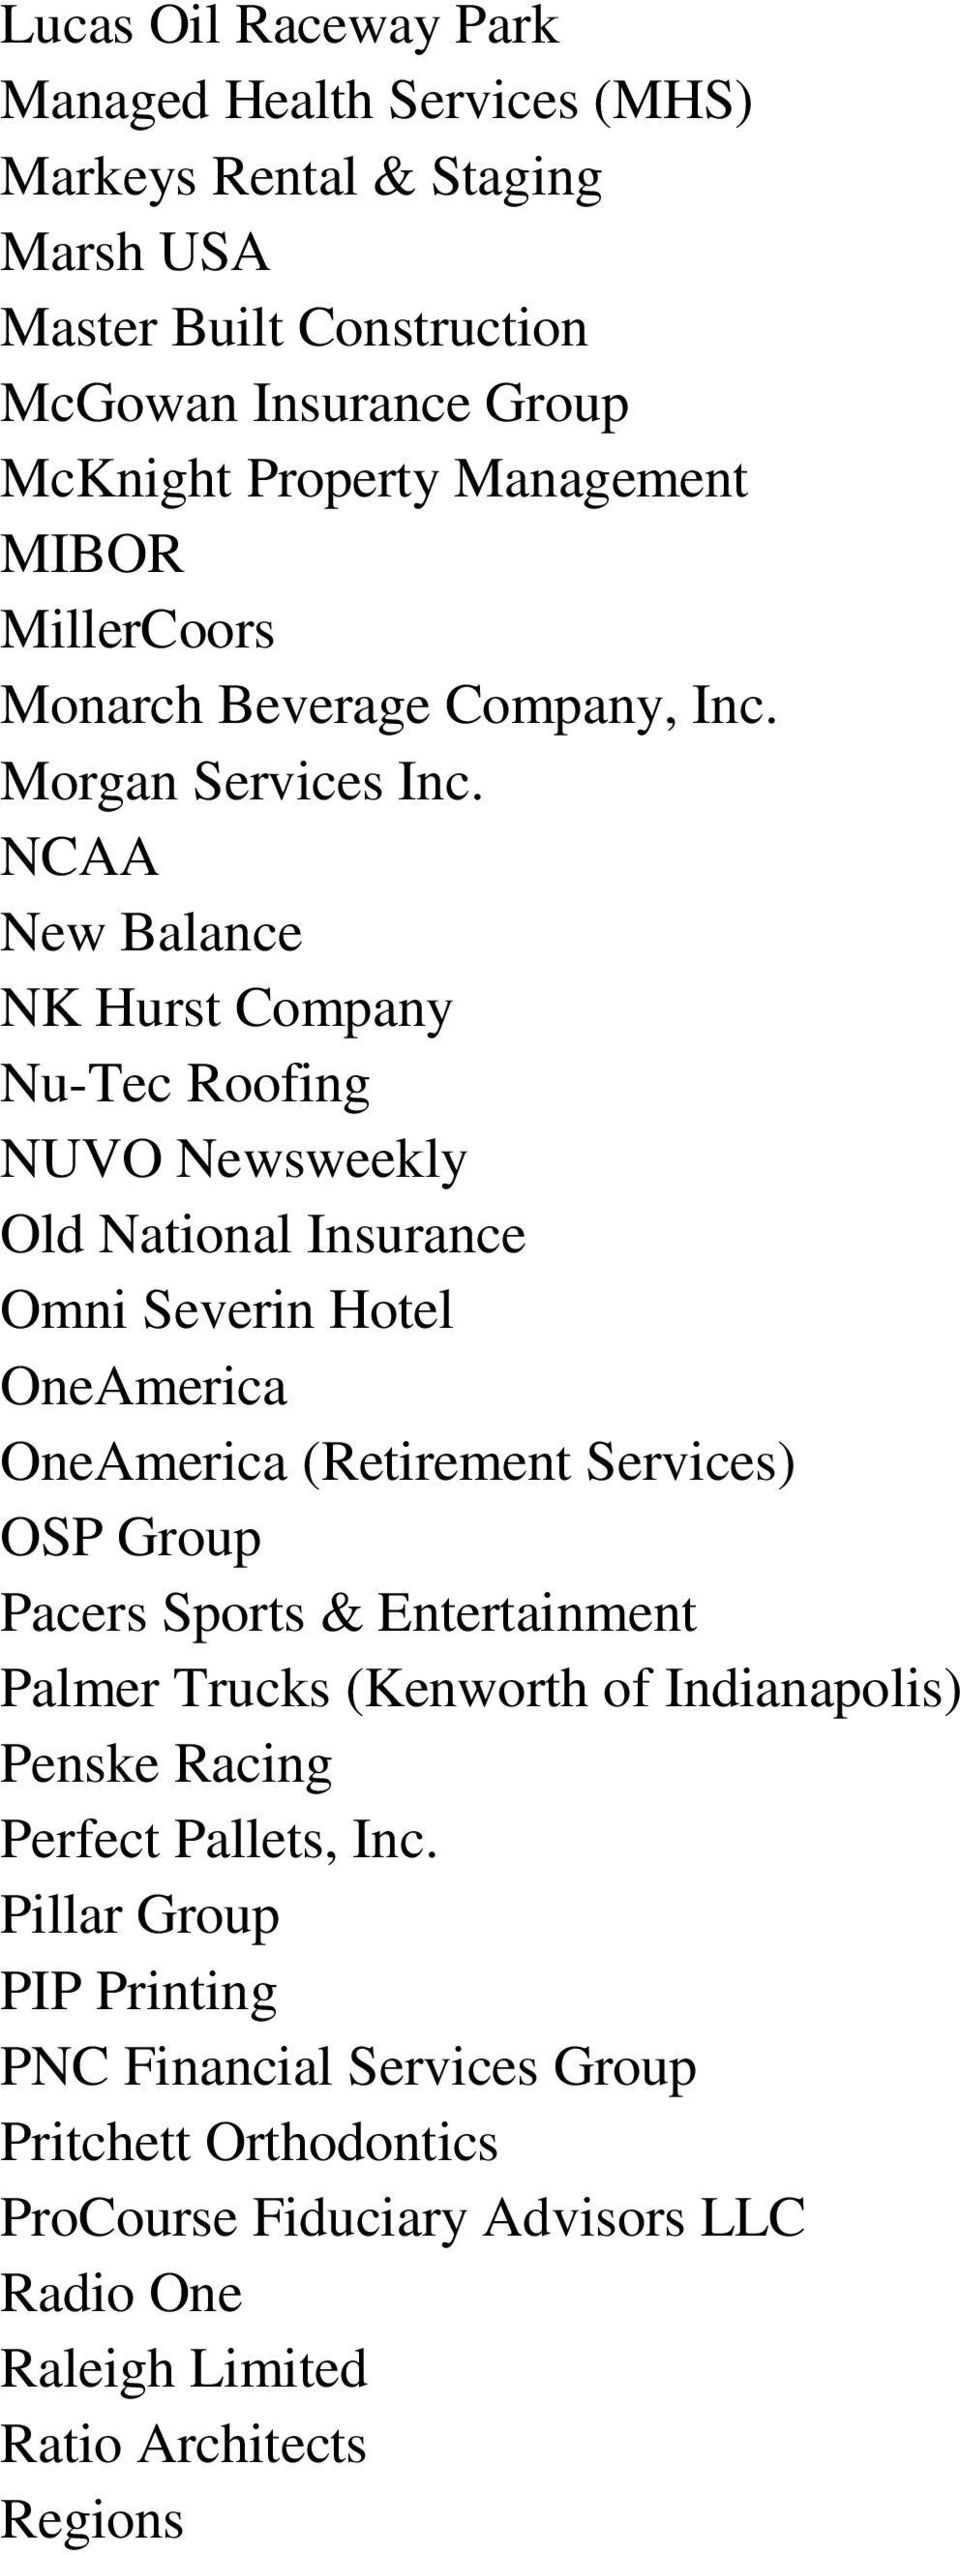 NCAA New Balance NK Hurst Company Nu-Tec Roofing NUVO Newsweekly Old National Insurance Omni Severin Hotel OneAmerica OneAmerica (Retirement Services) OSP Group